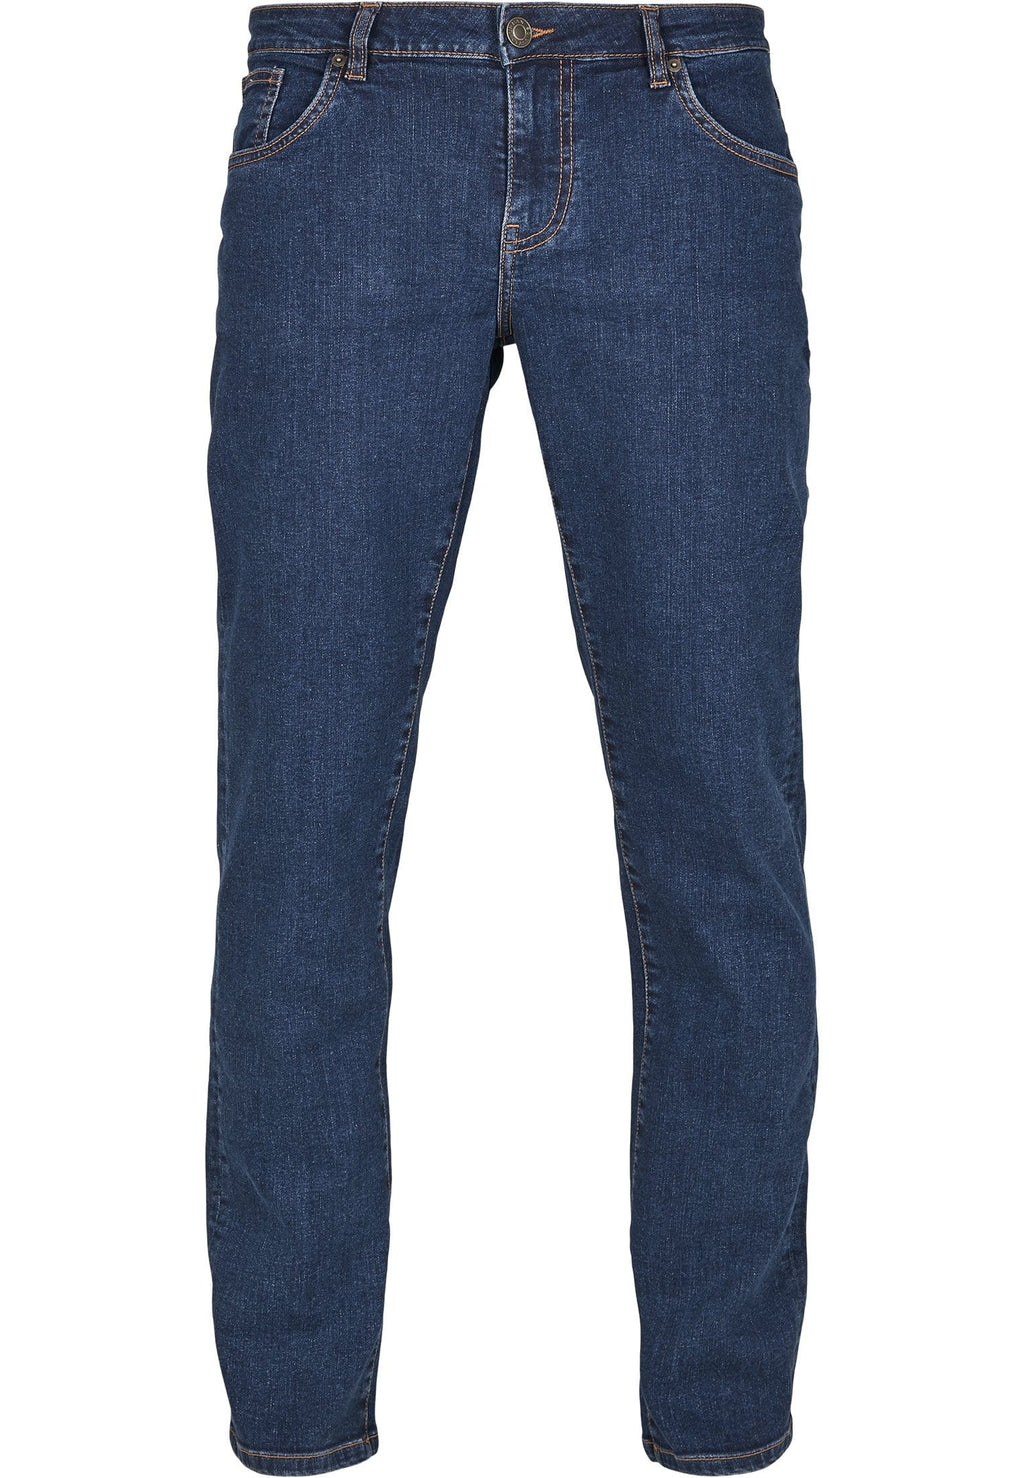 Relaxed Fit Jeans - Dark Blue Wash